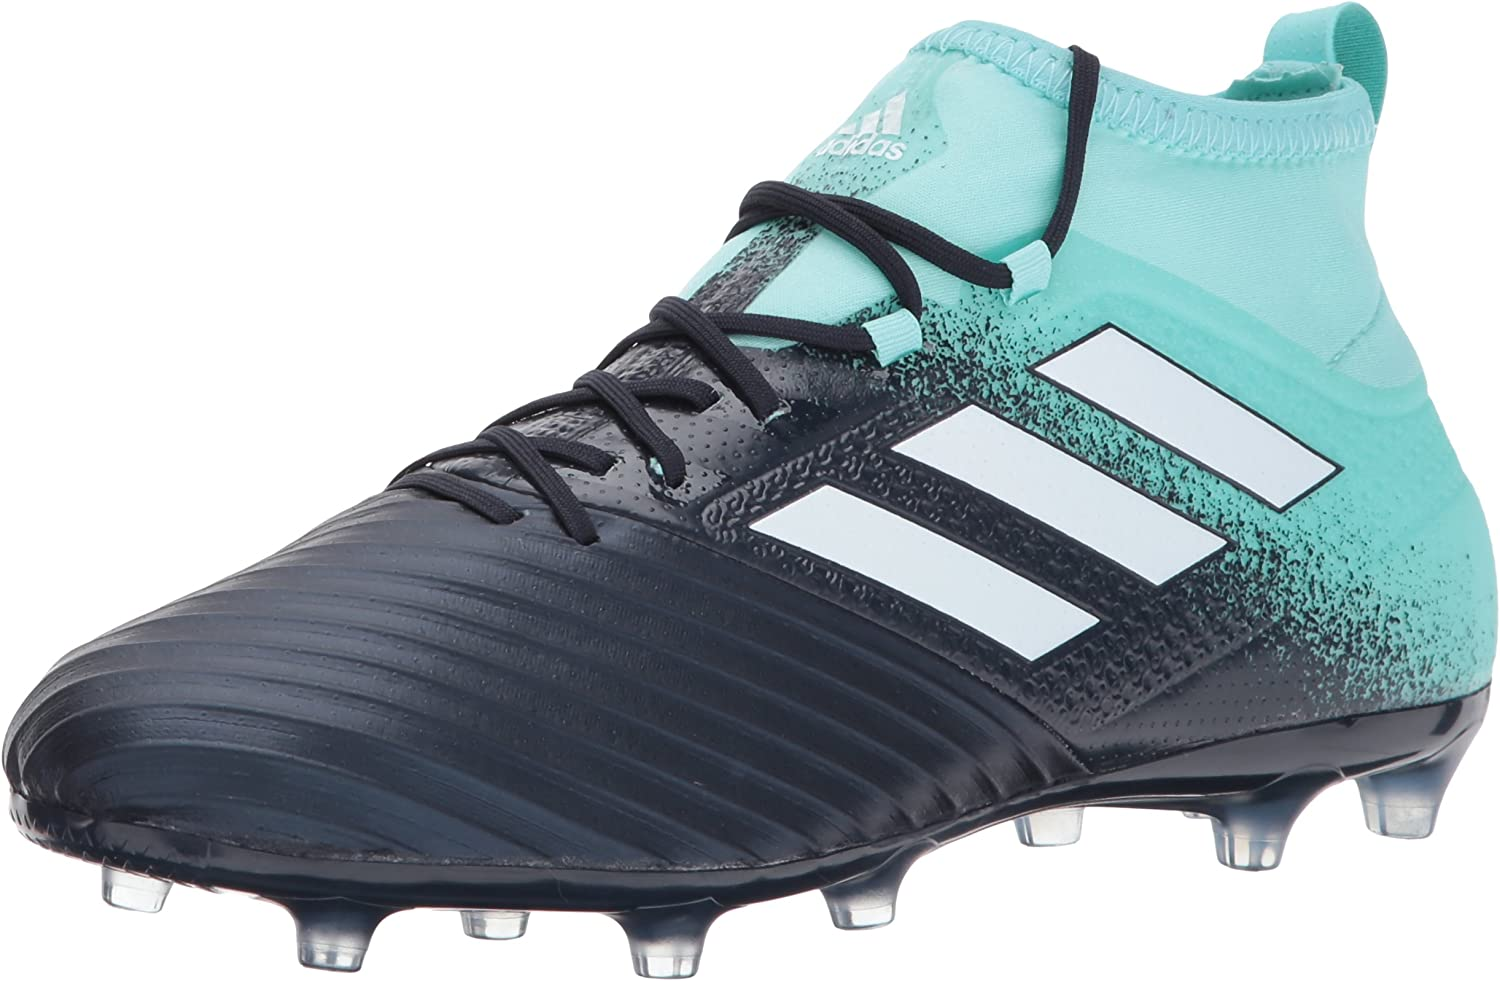 Adidas Men's Ace 17.2 Firm Ground Cleats Soccer shoes